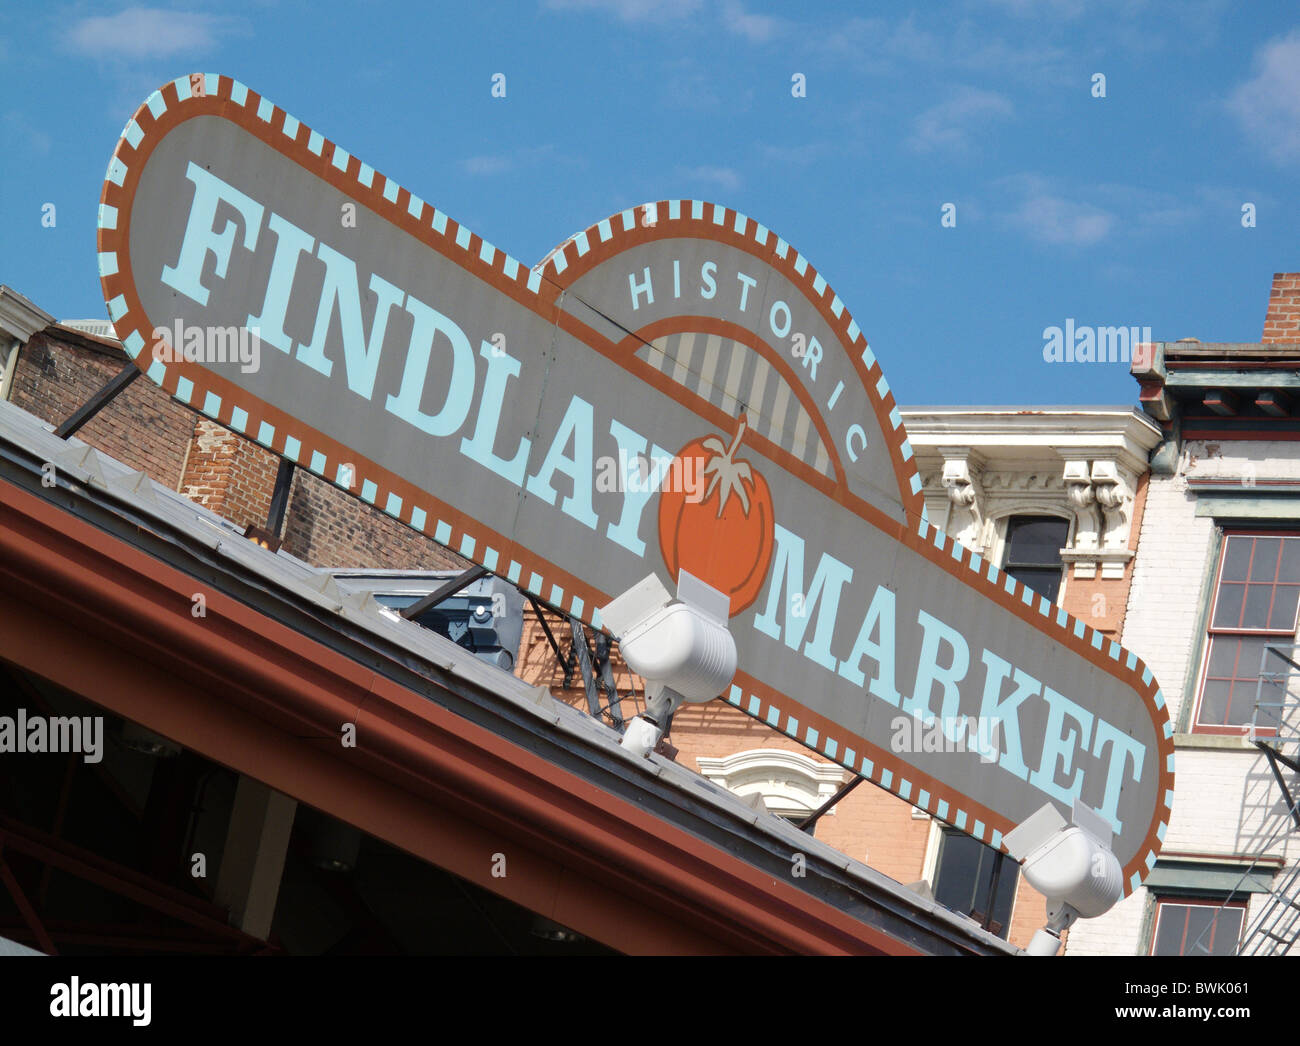 The historic Findlay Market in Cincinnati in Ohio, United States of America Stock Photo